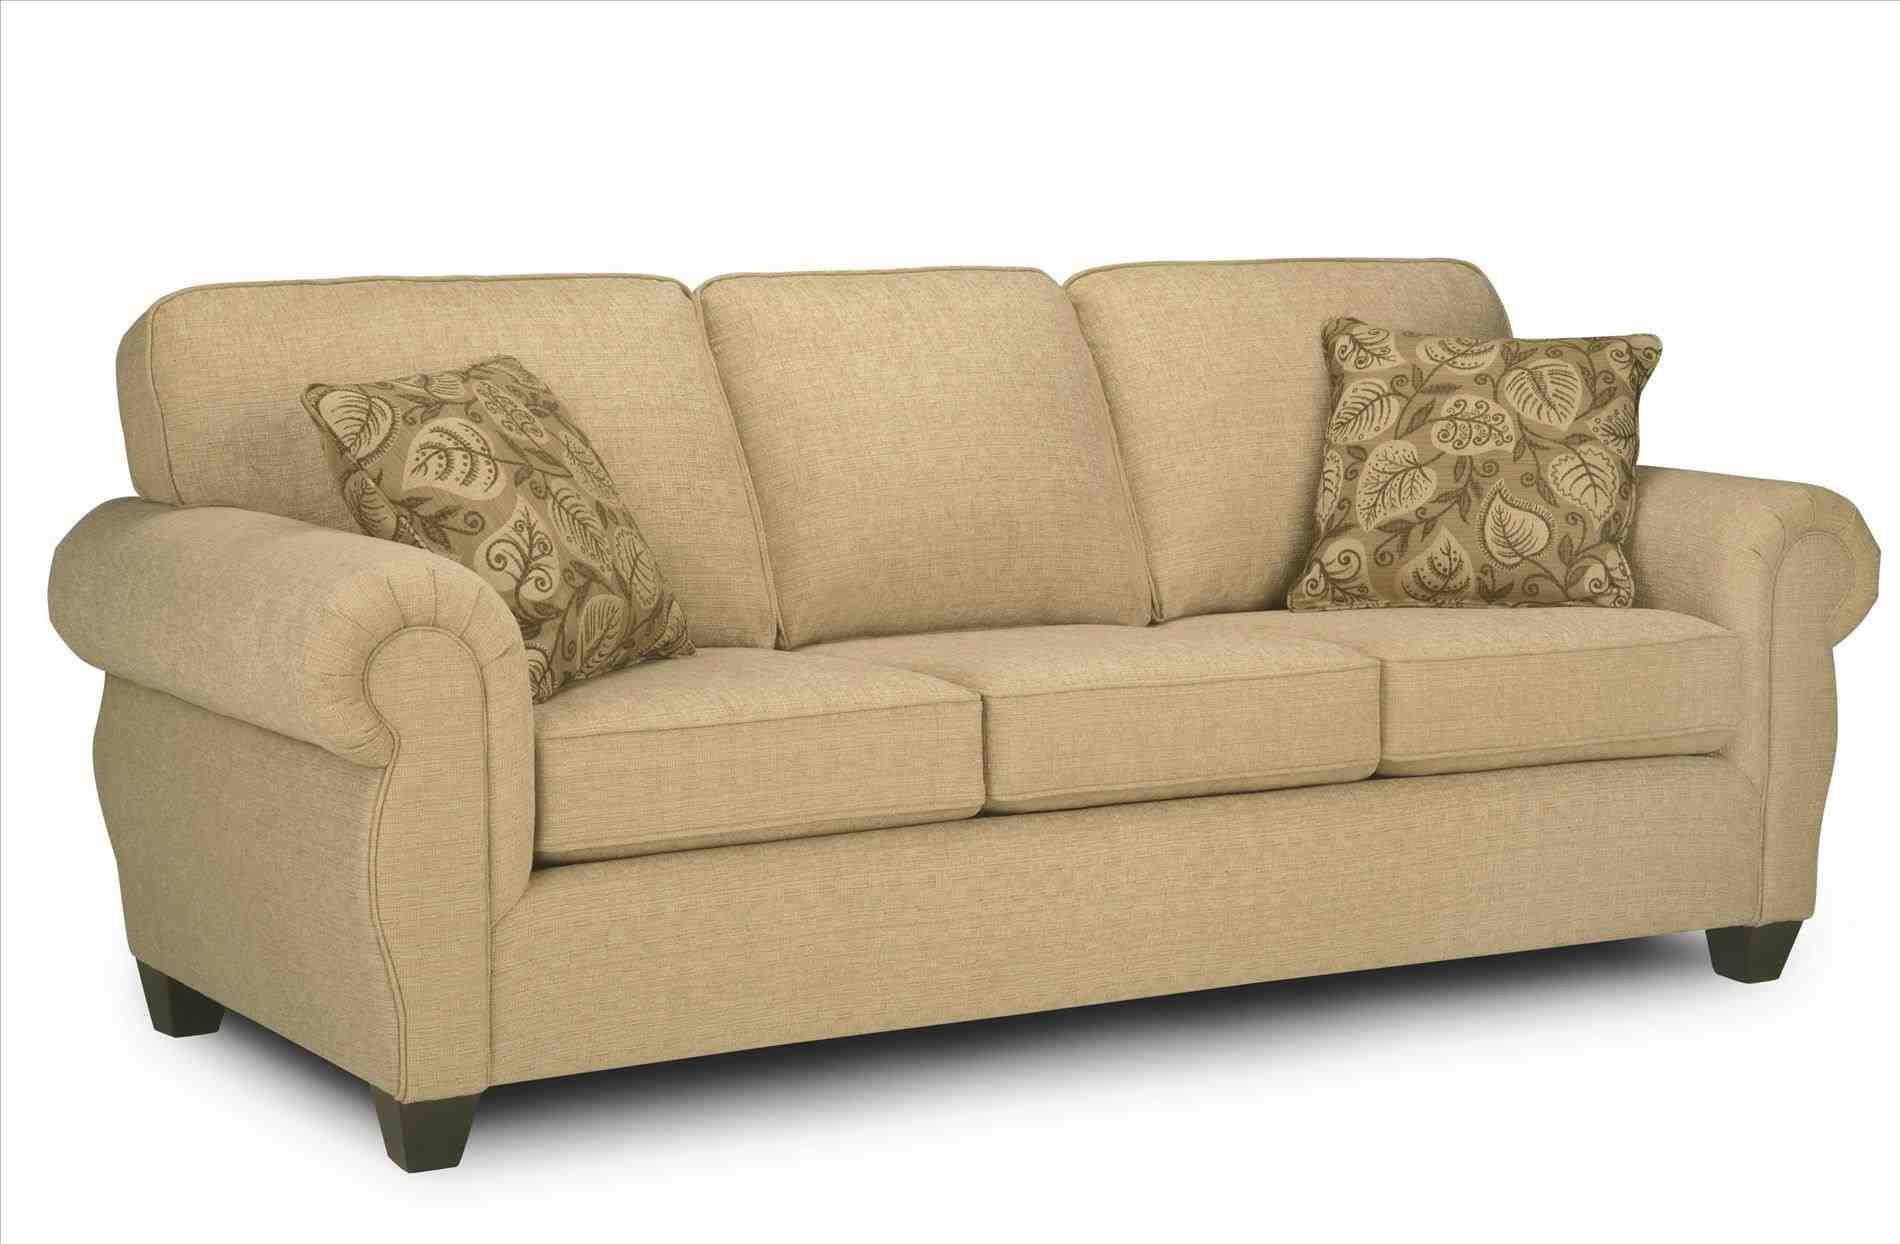 Cheap Sofa In Toronto Large Sectional Sofas Designg Leather With Chaise Extra Recliners Large Sectional Sofas Toronto S Sofa Living Room Pieces Furniture